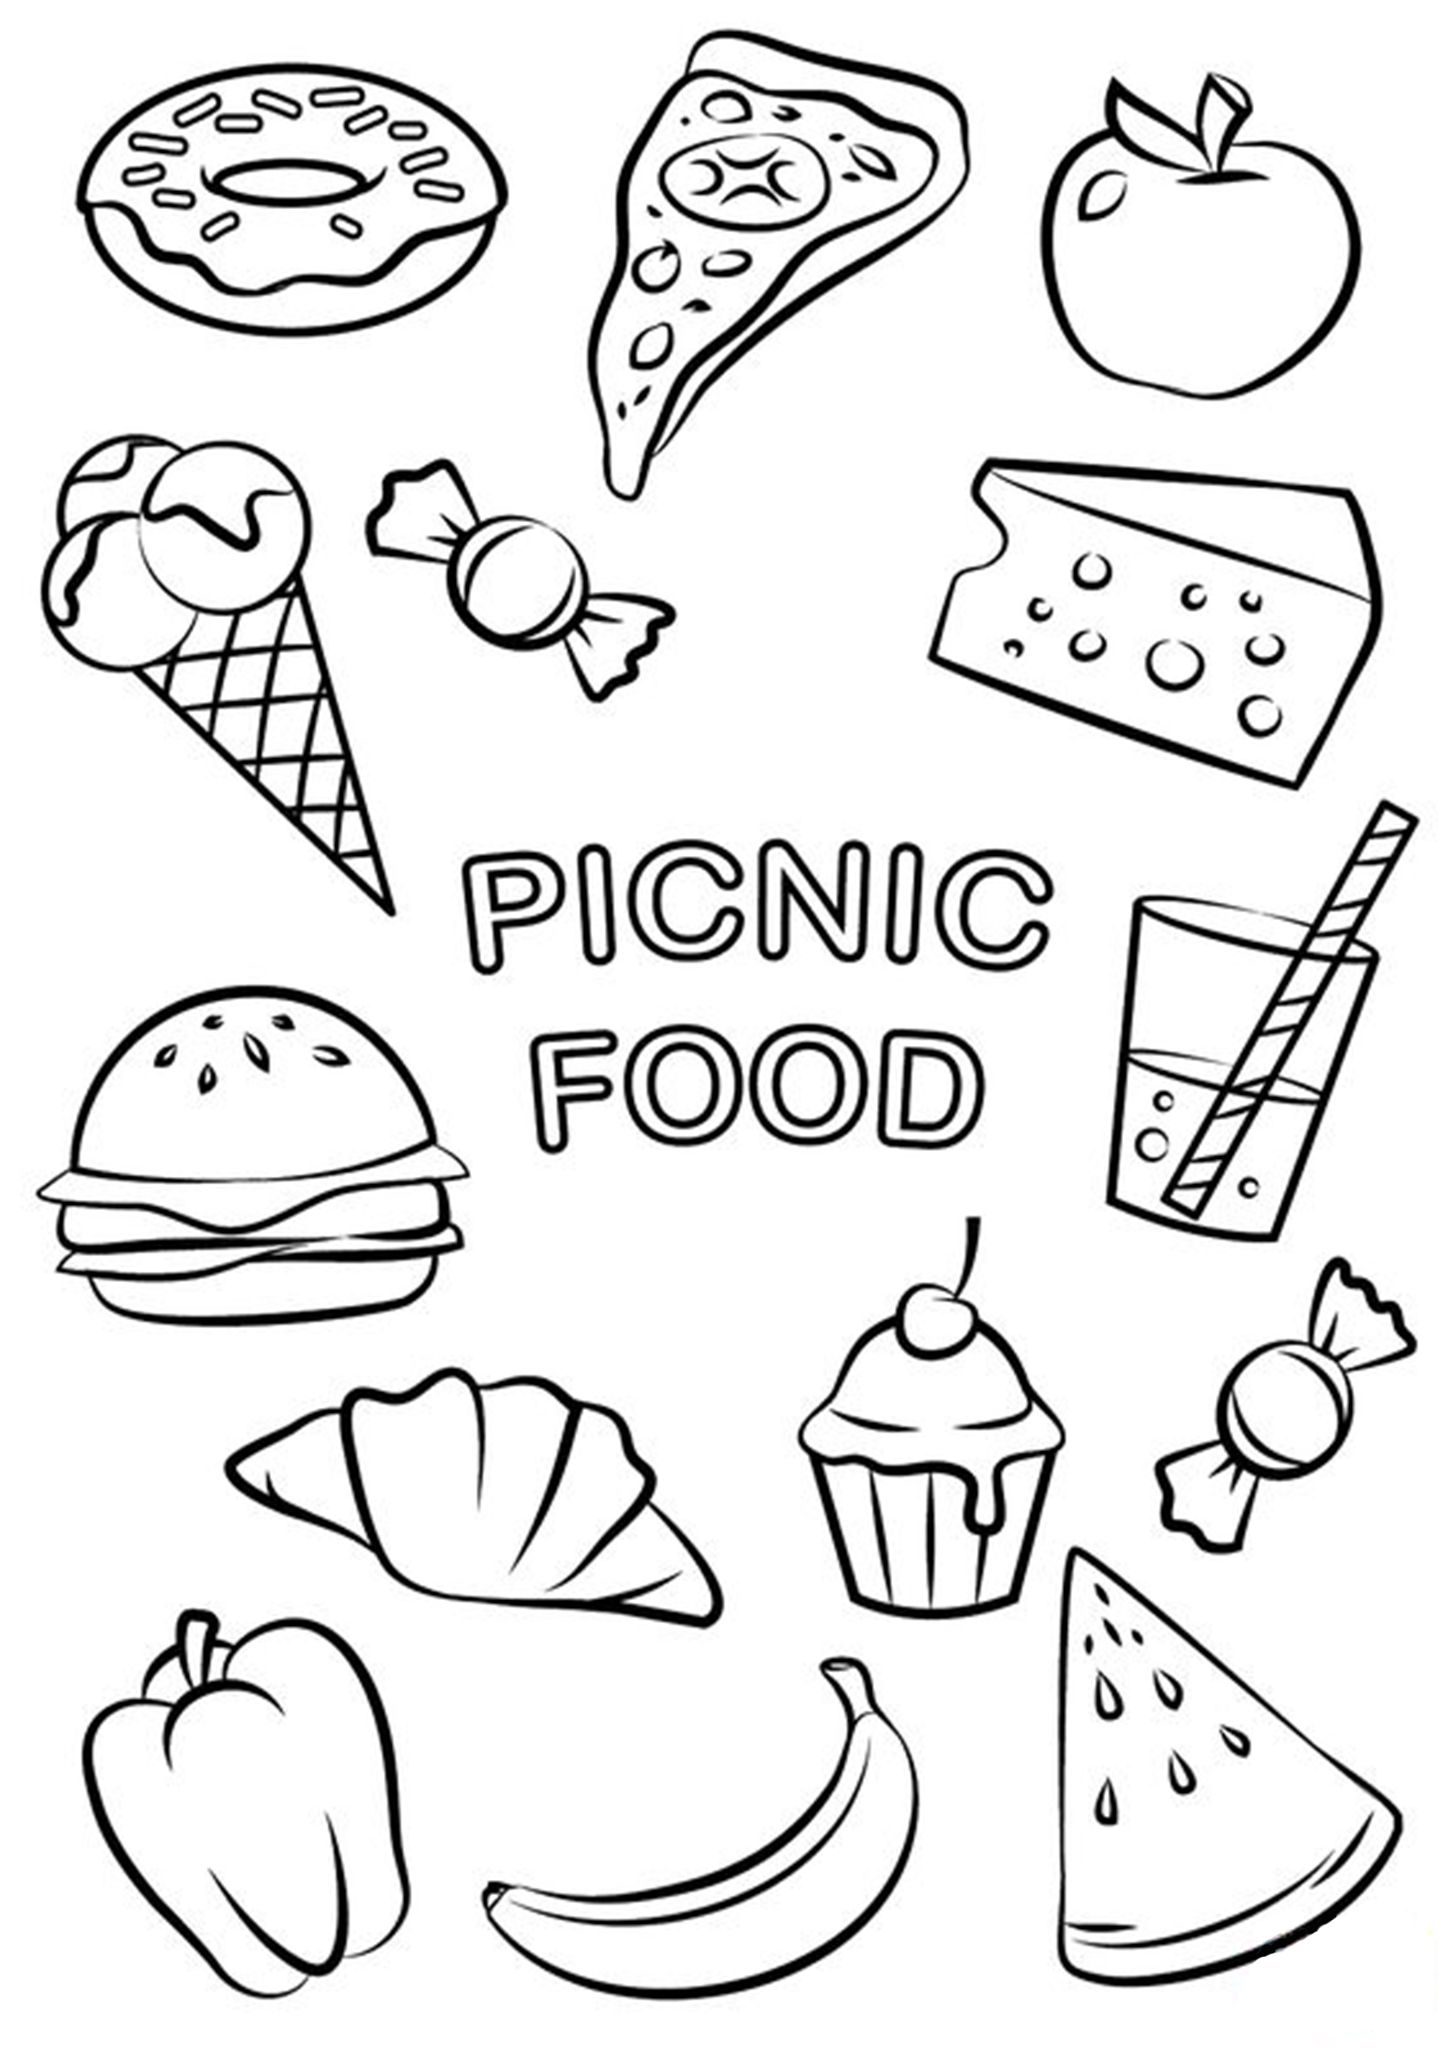 Free Easy To Print Food Coloring Pages In 2020 Food Coloring Pages Fruit Coloring Pages Free Printable Coloring Pages